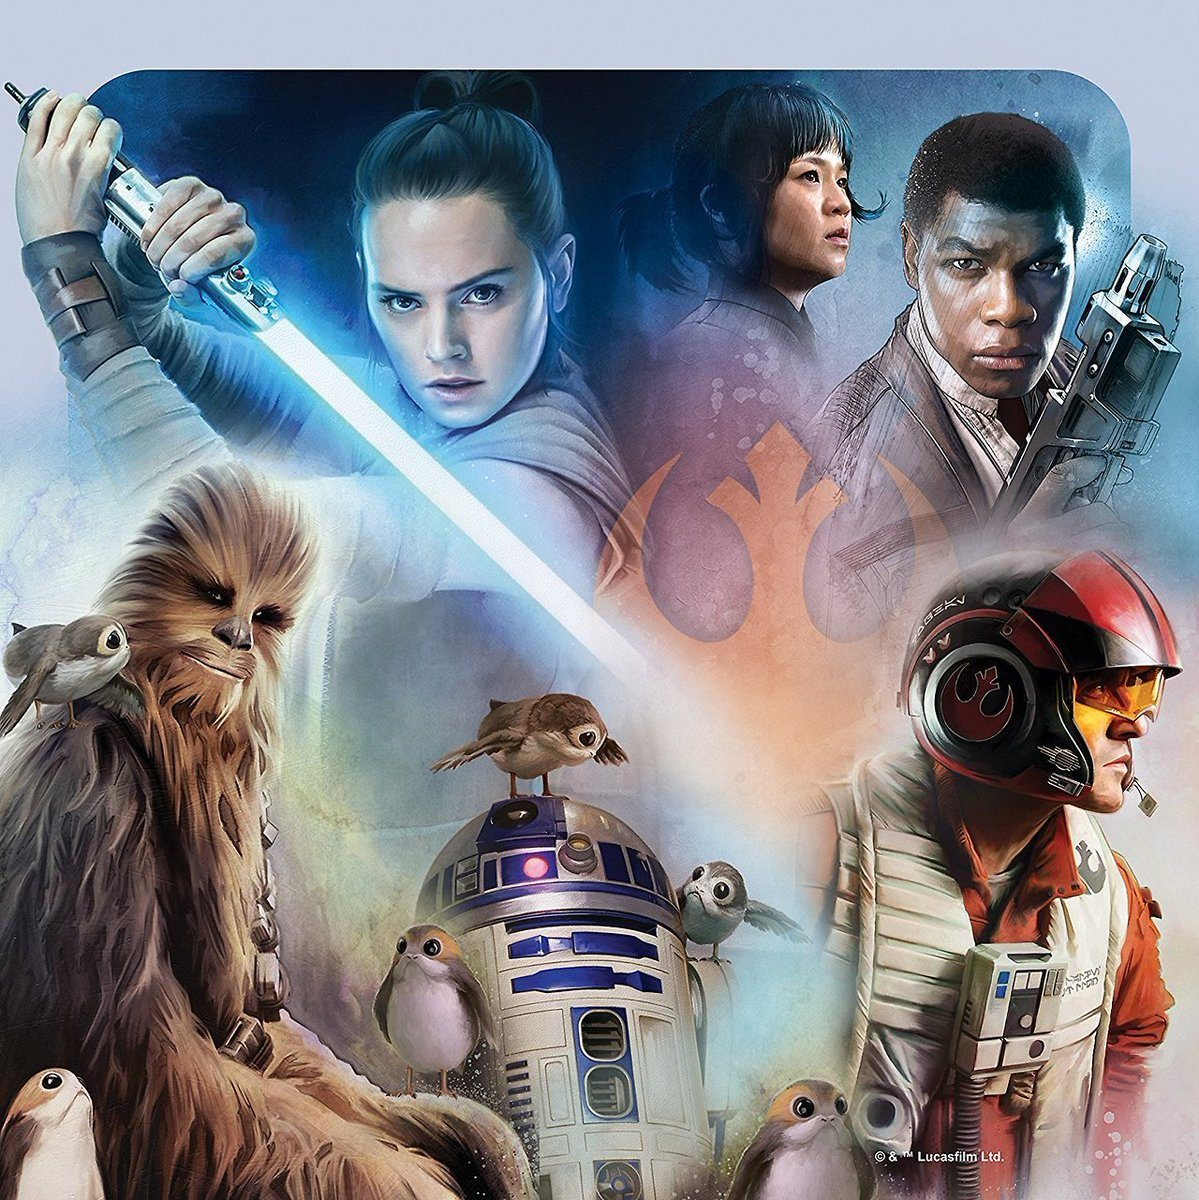 New Promo Posters For Star Wars: The Last Jedi